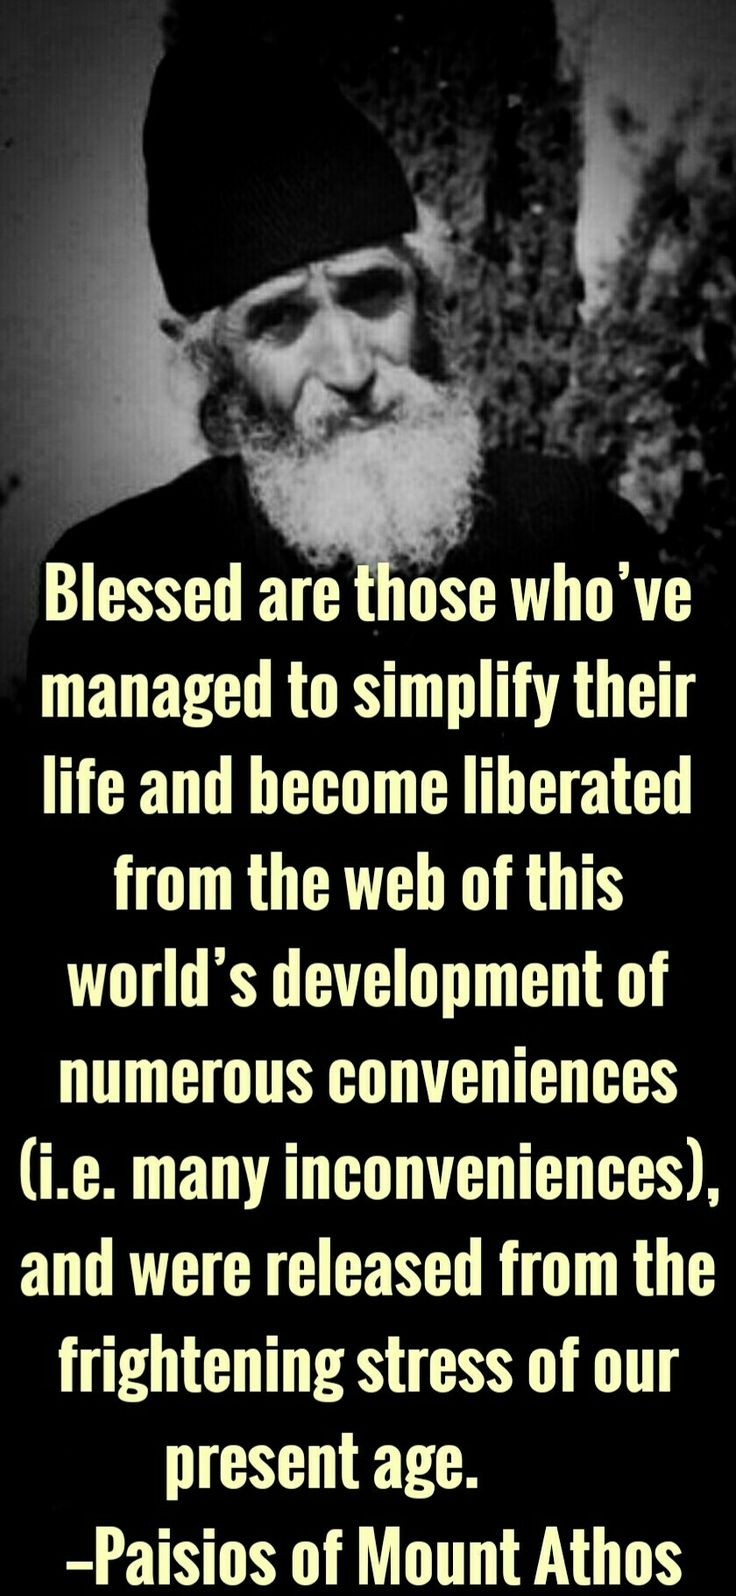 Paisios of Mount Athos